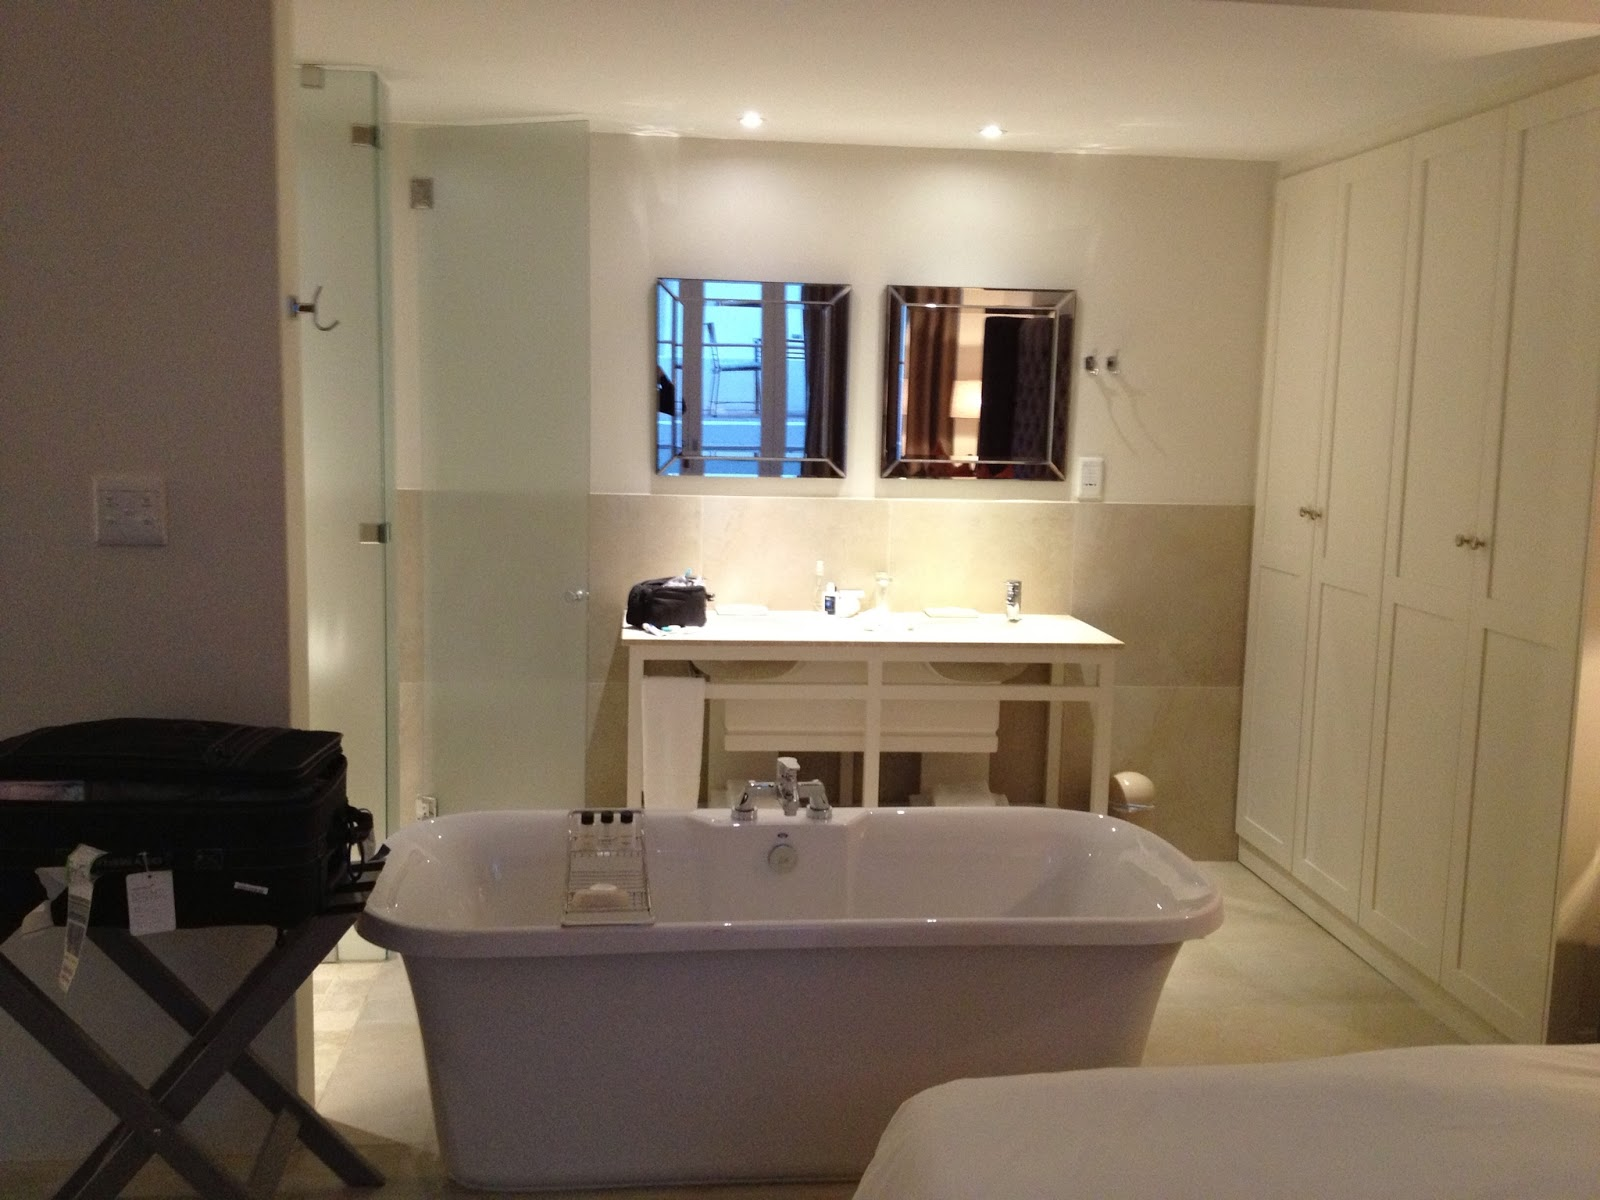 Cape Town - I loved this tub which was right in the middle of the room